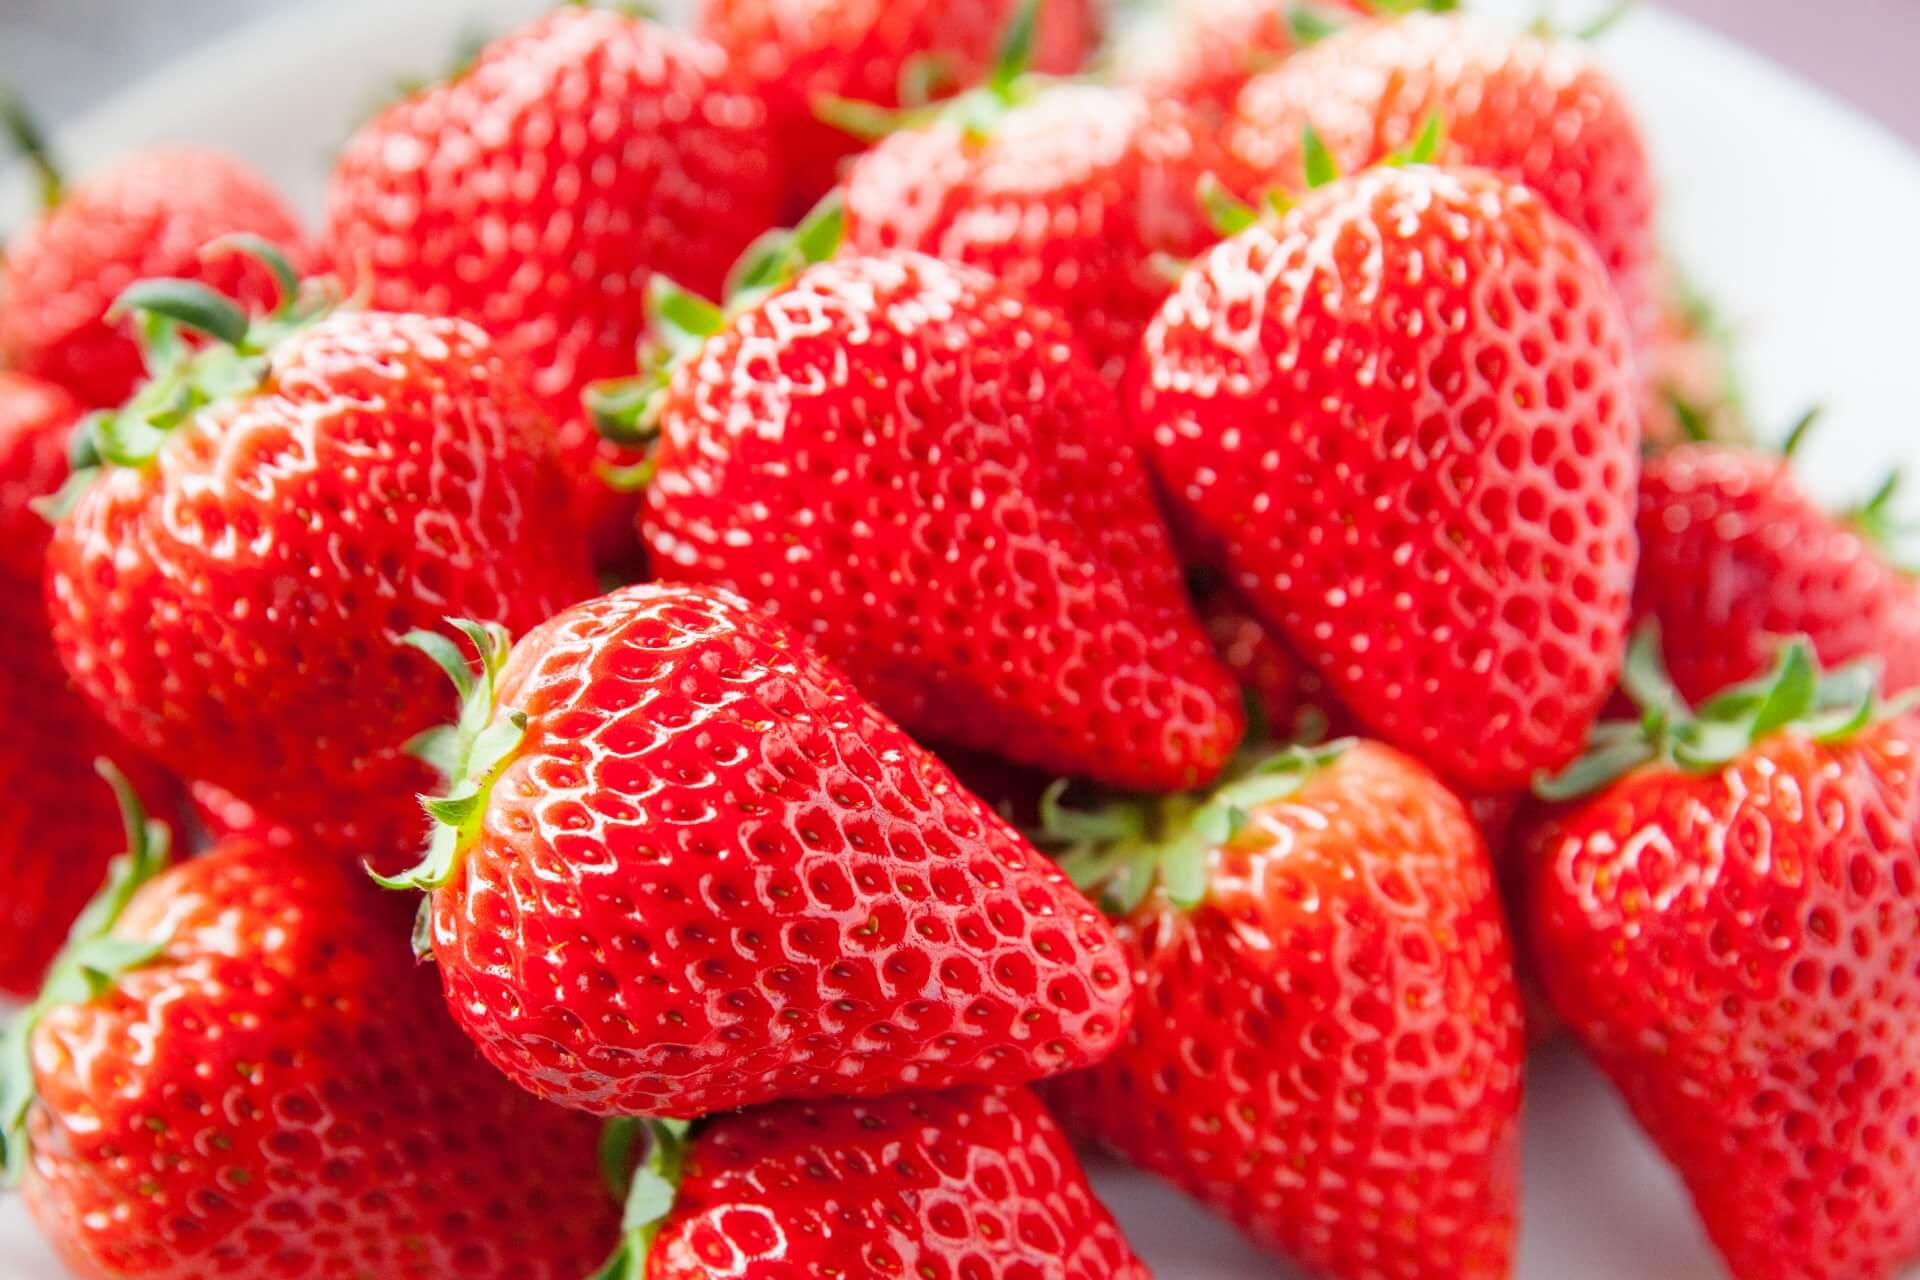 strawberries are a delicious seasonal fruit in japan